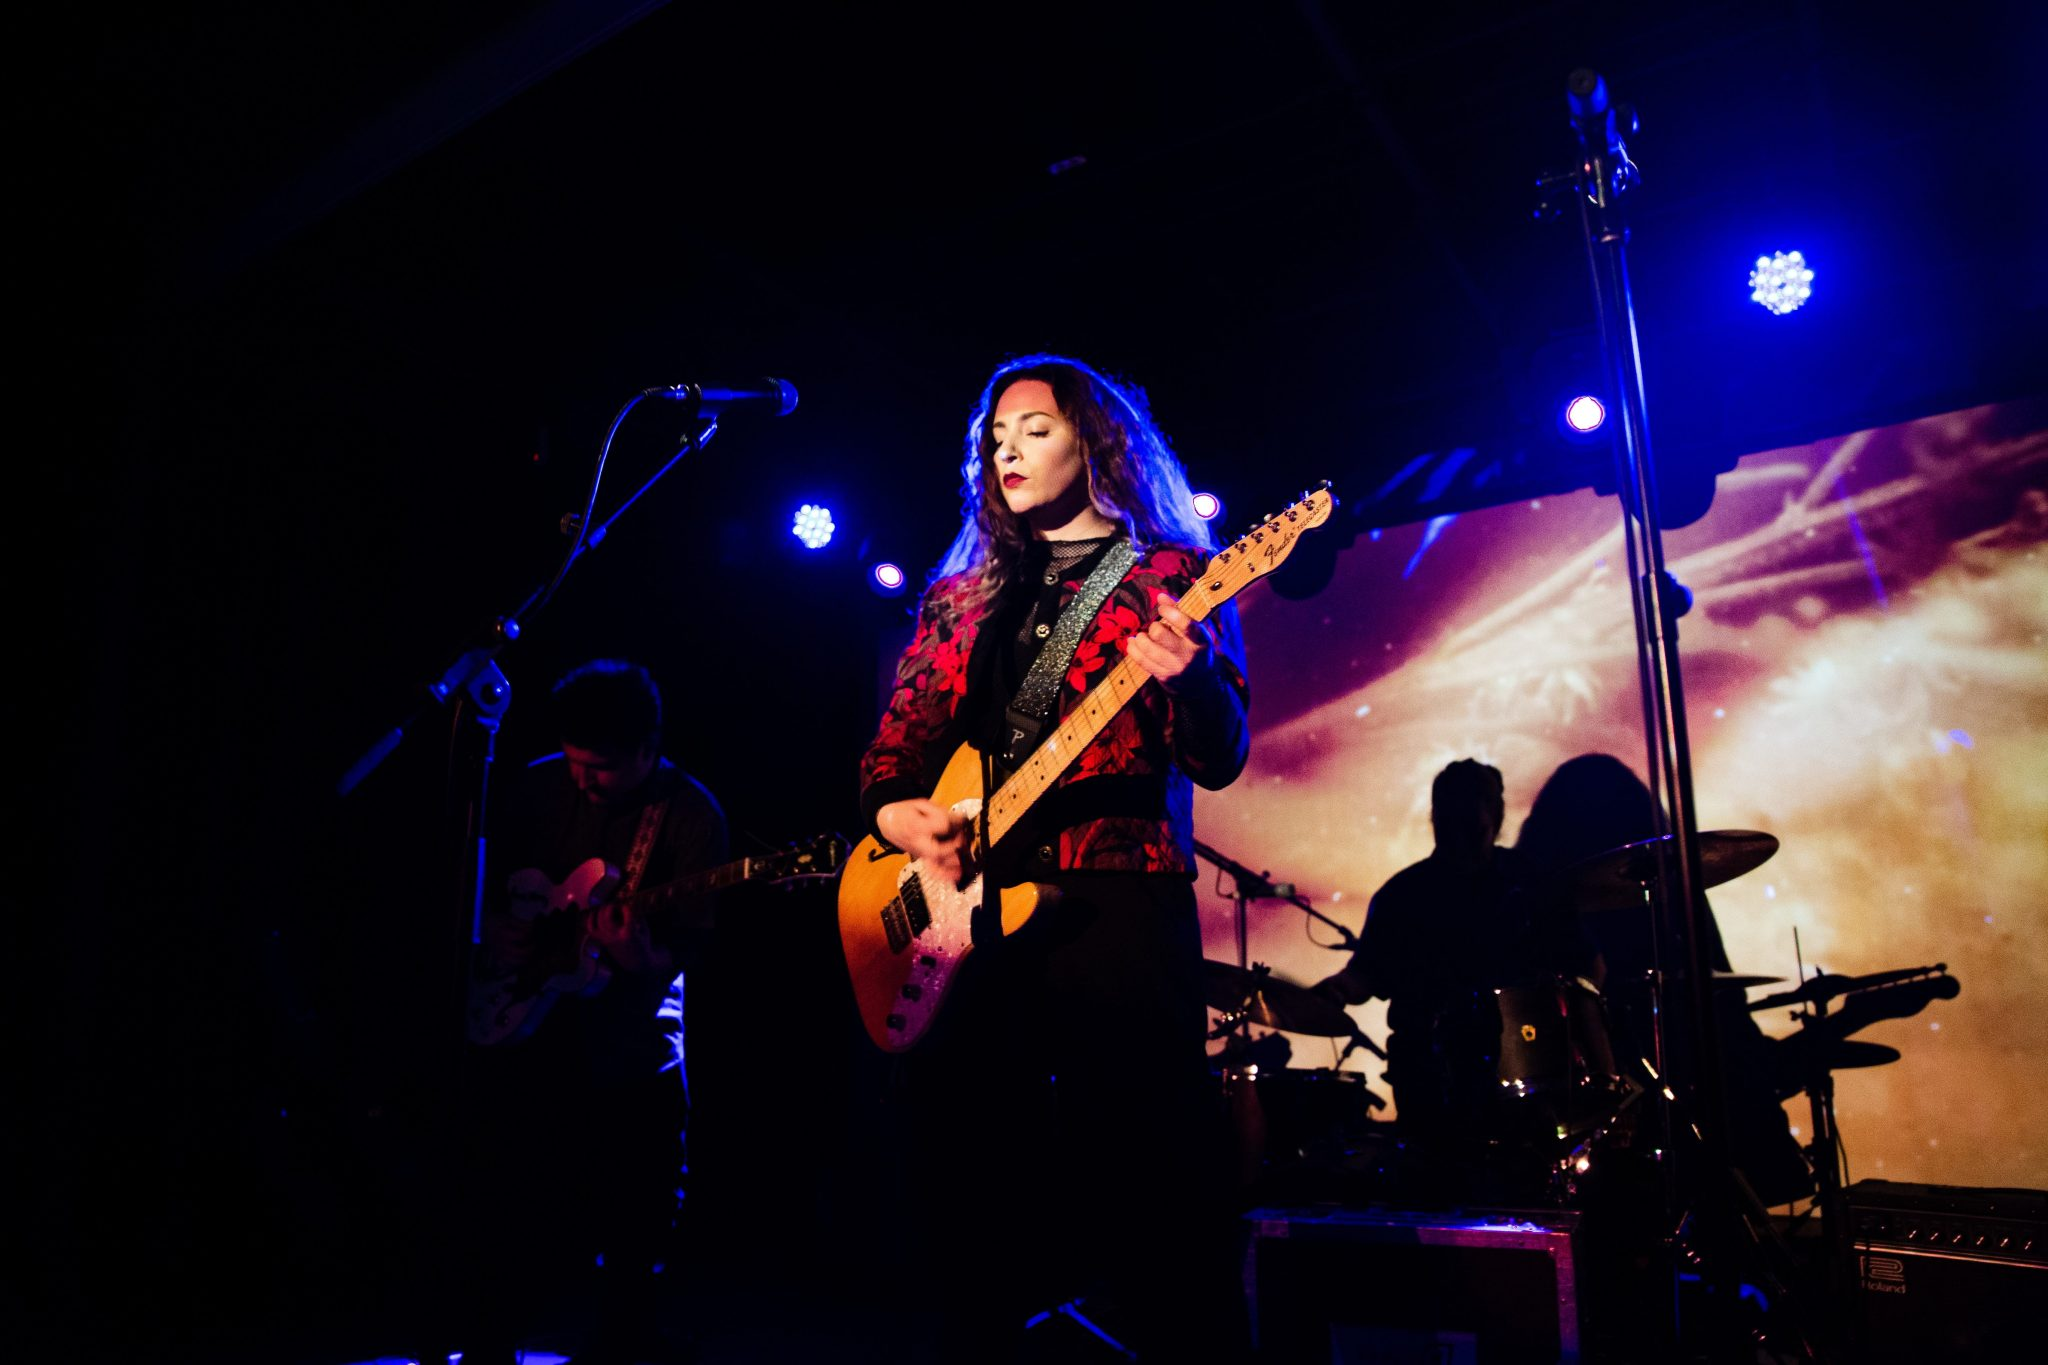 female musician singing and playing guitar in front of an audience